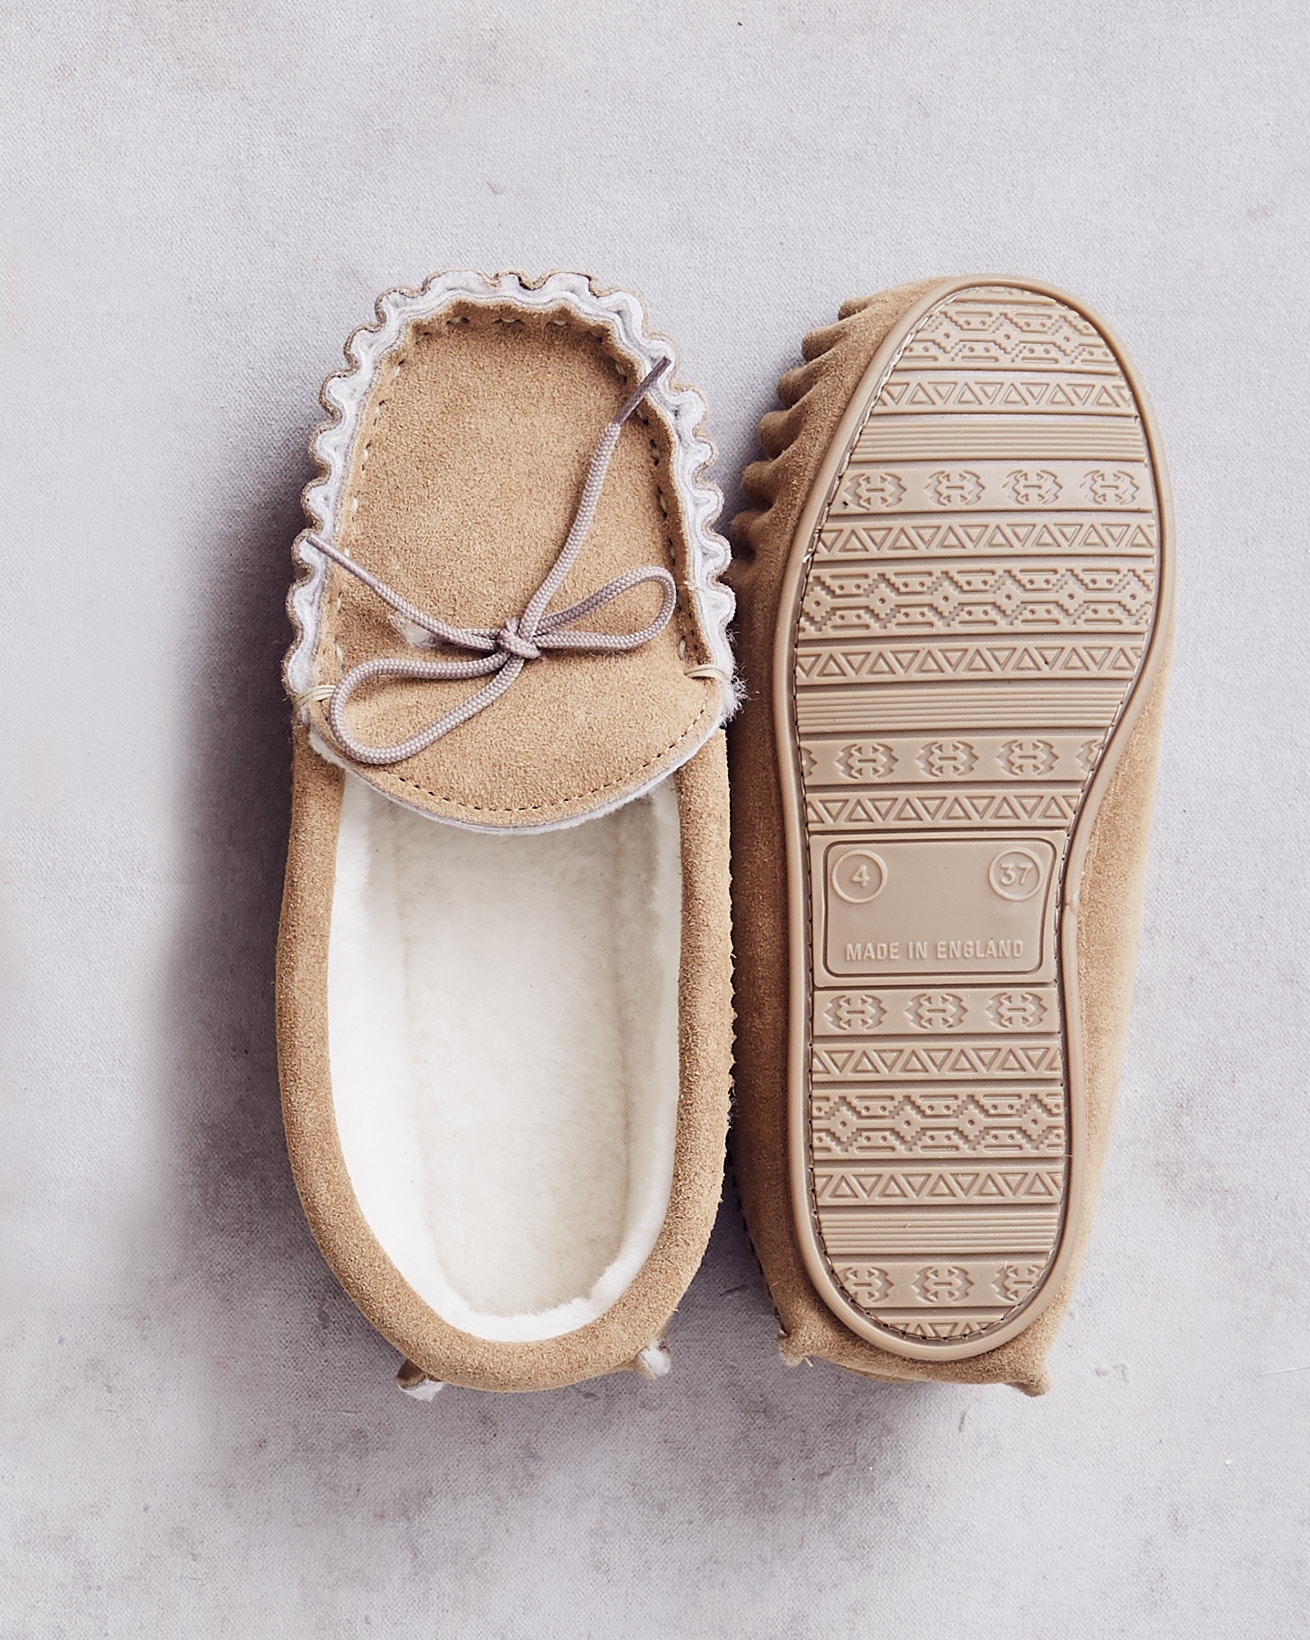 Loafer Moccasins - Hard Sole